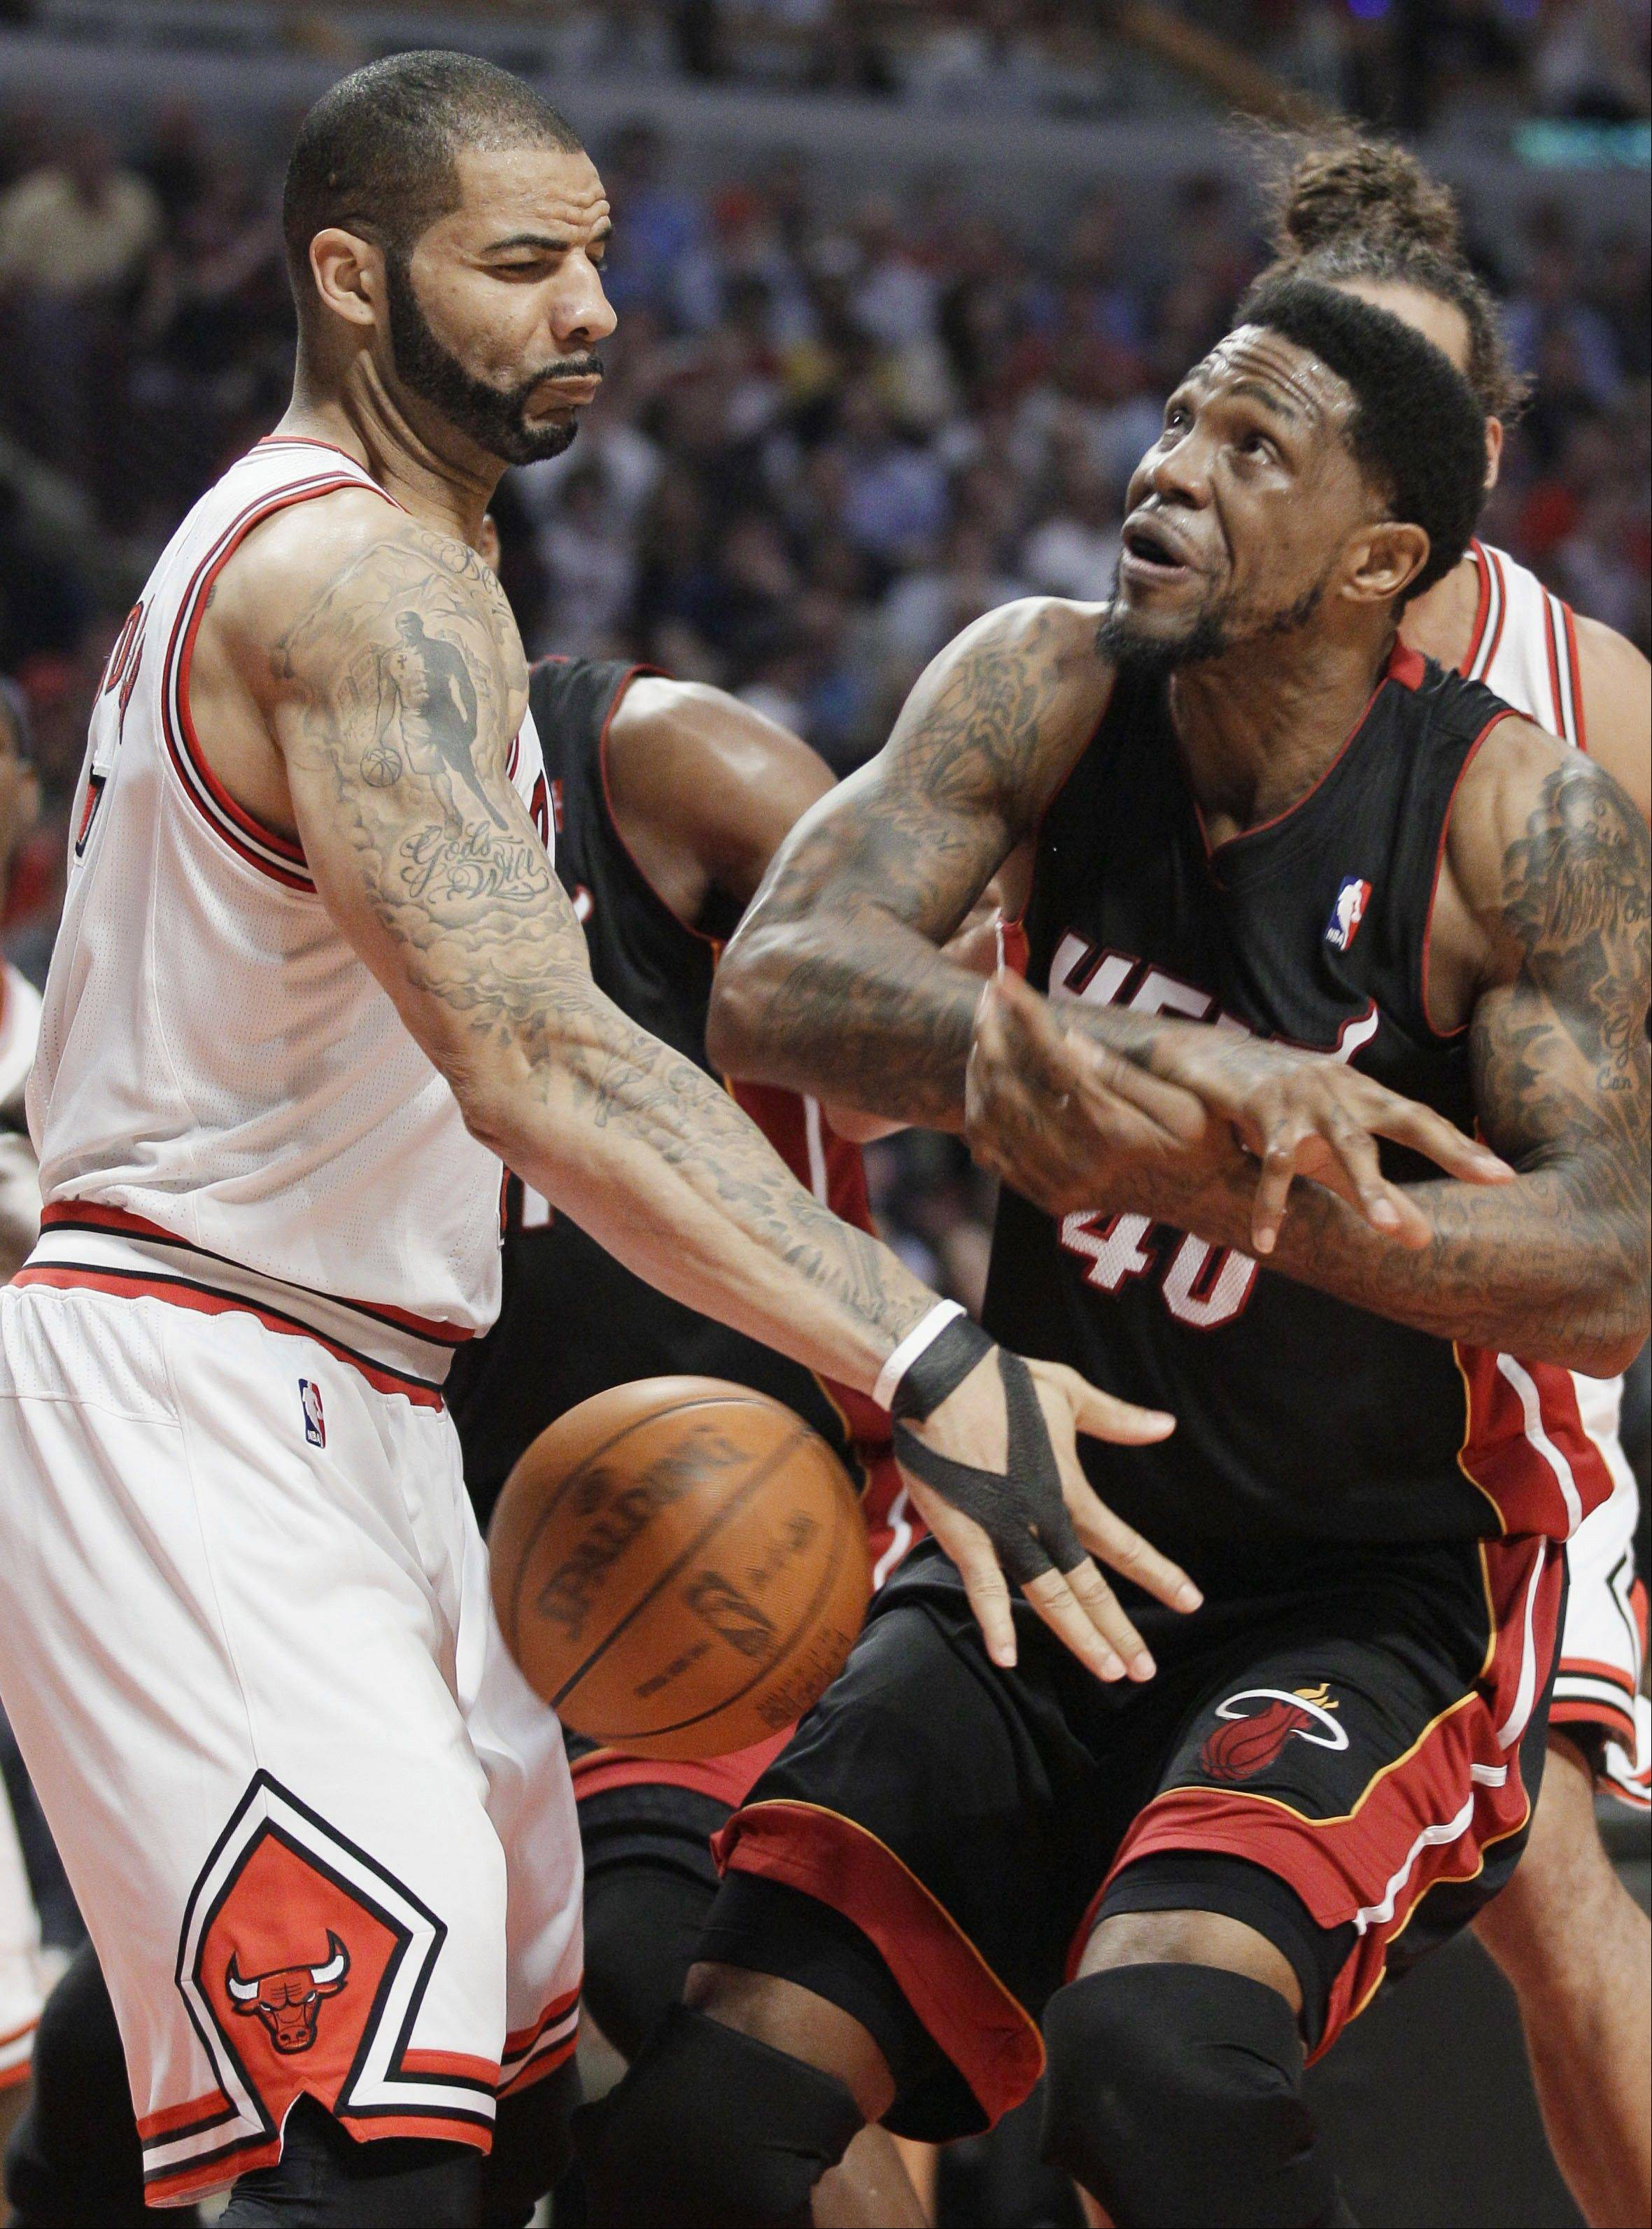 Bulls forward Carlos Boozer (5) steals the ball from Miami Heat forward Udonis Haslem (40) during the first half of an NBA basketball game in Chicago, Wednesday, March 14, 2012.